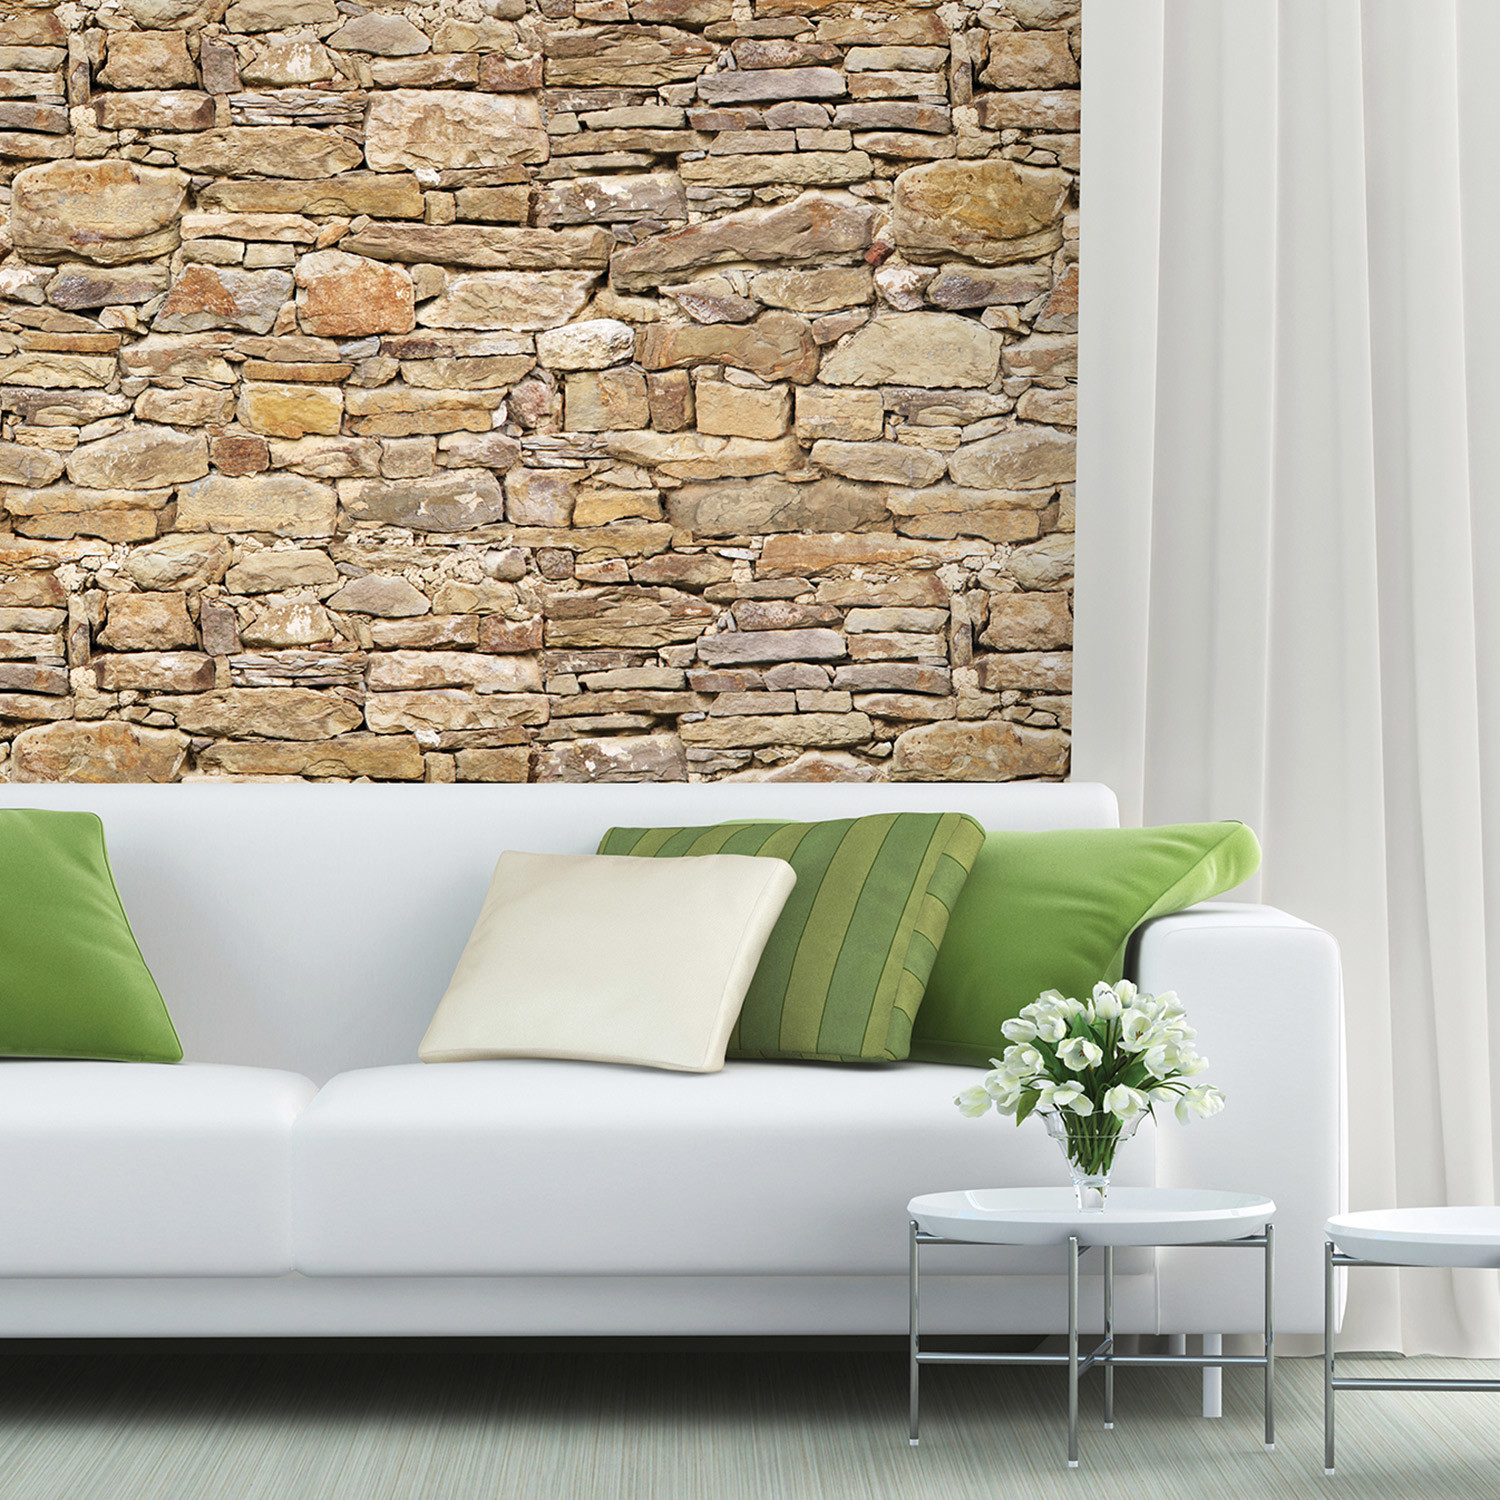 Stone wall mural brewster home fashions touch of modern for Brewster home fashions wall mural